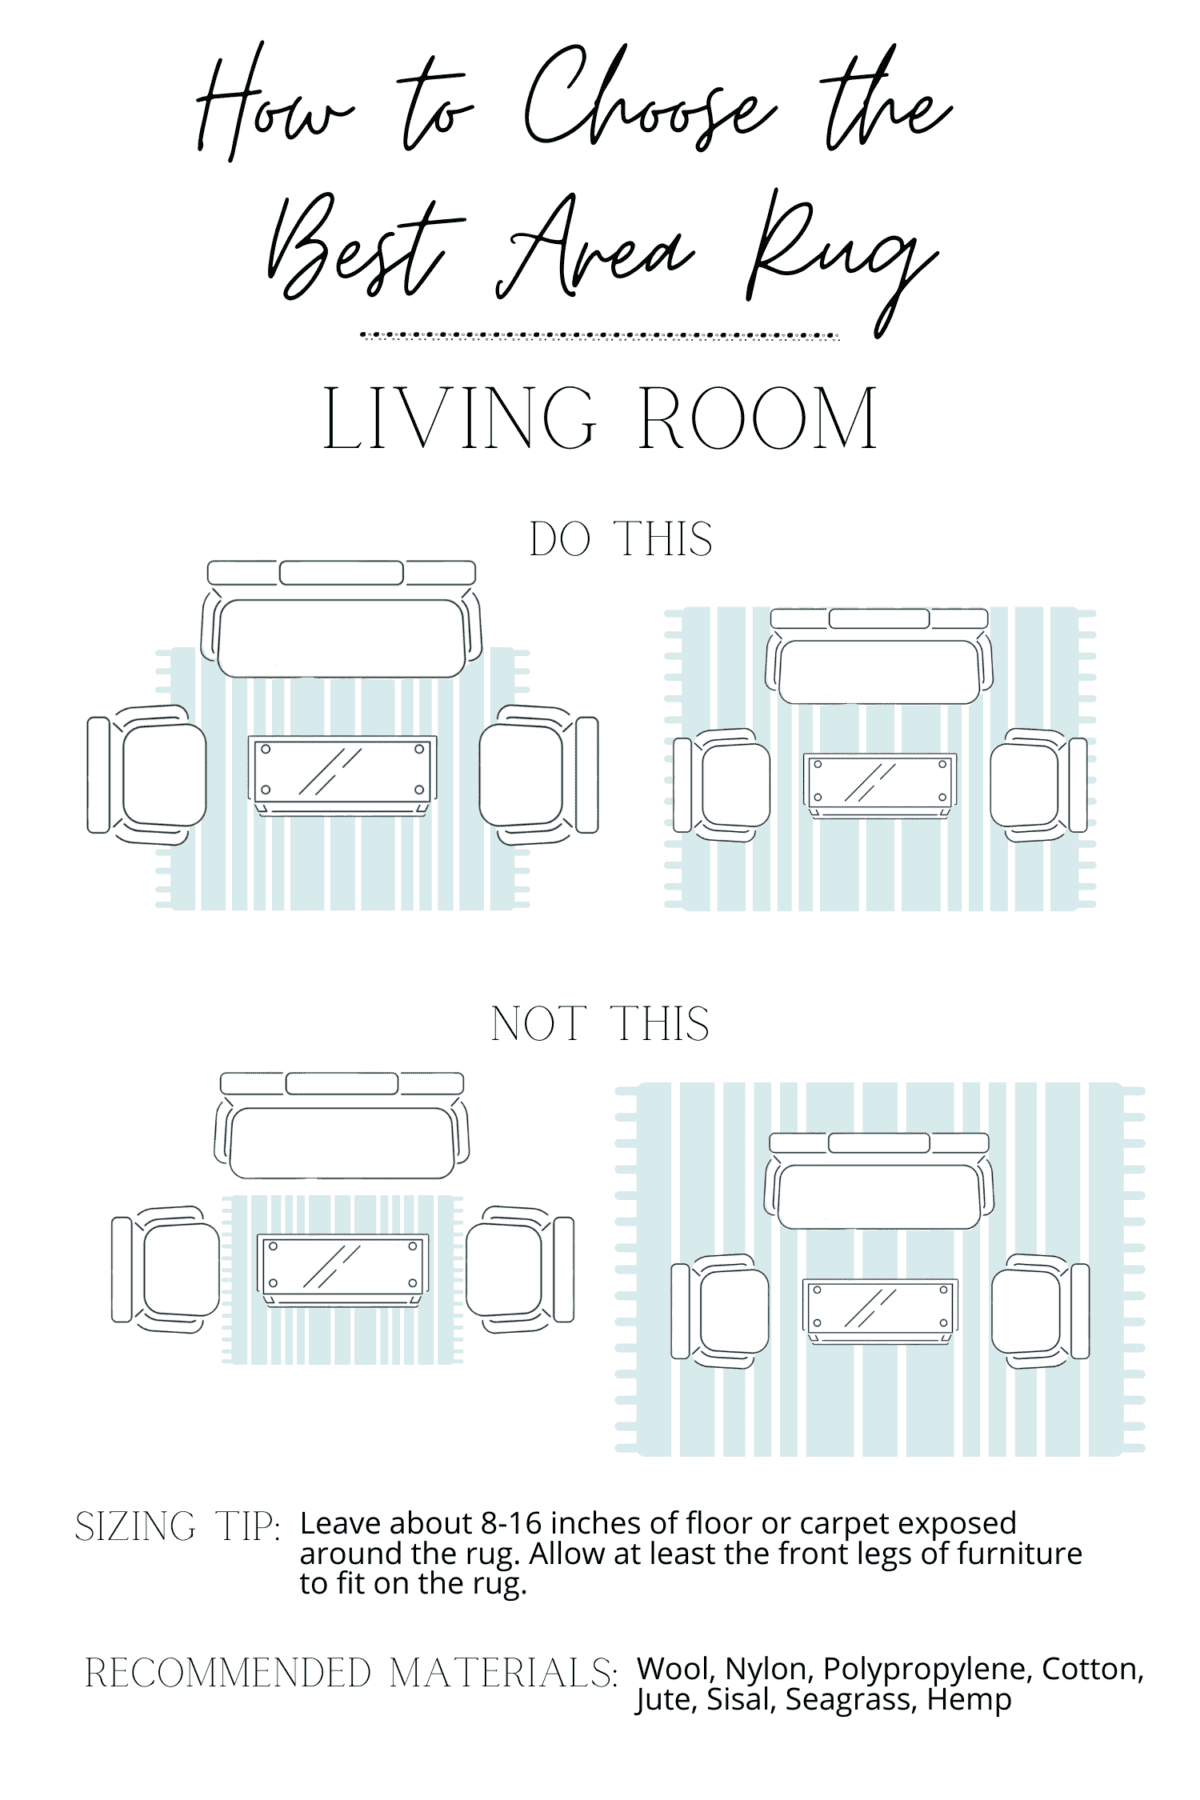 how to choose an area rug in a living room